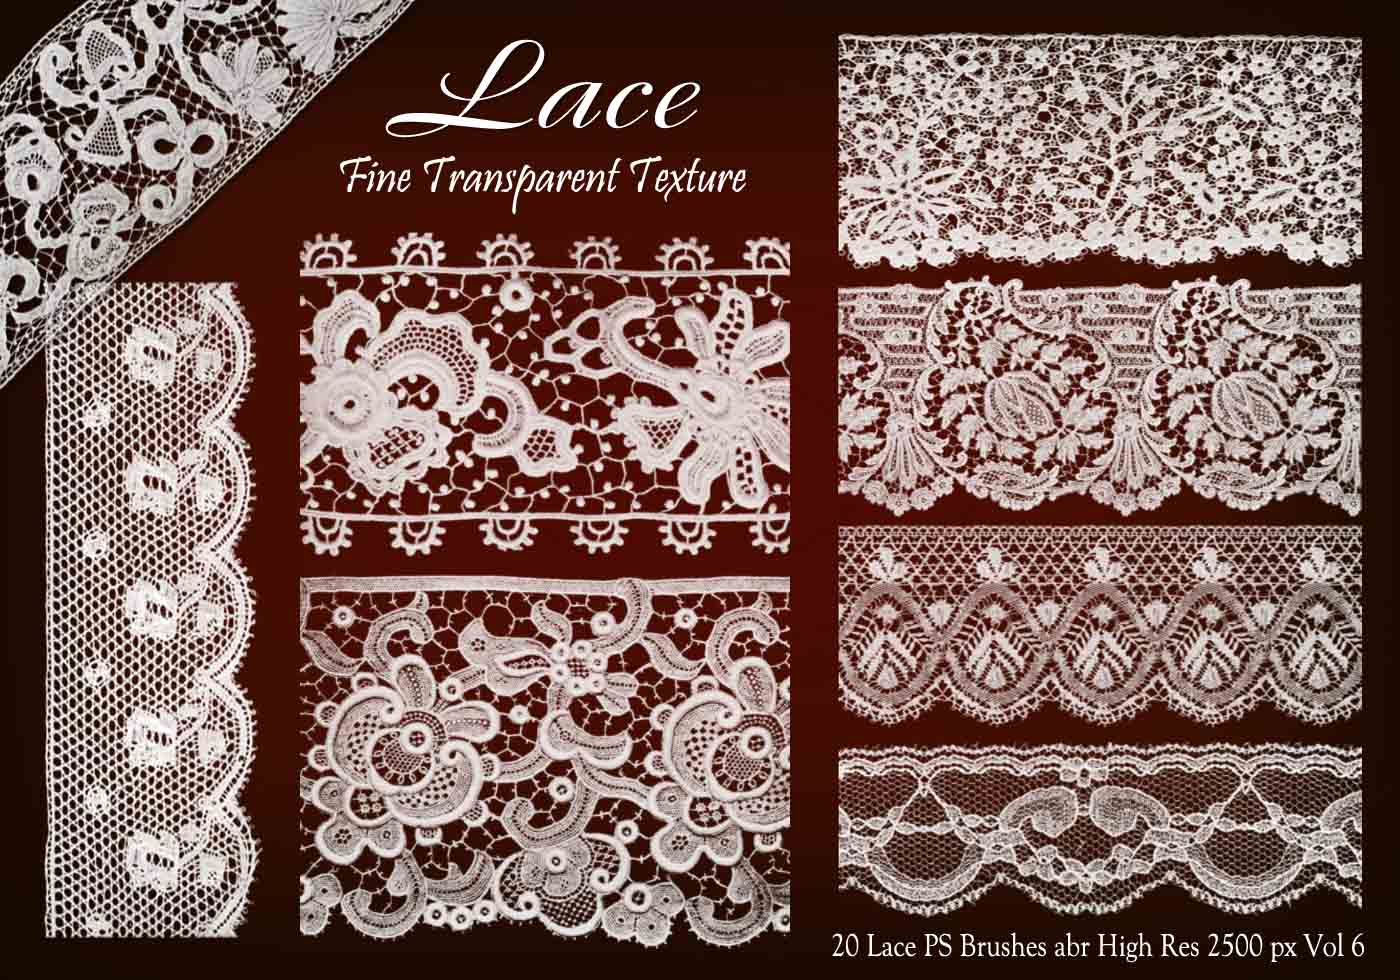 20 lace ps brushes abr vol 6 free photoshop brushes at